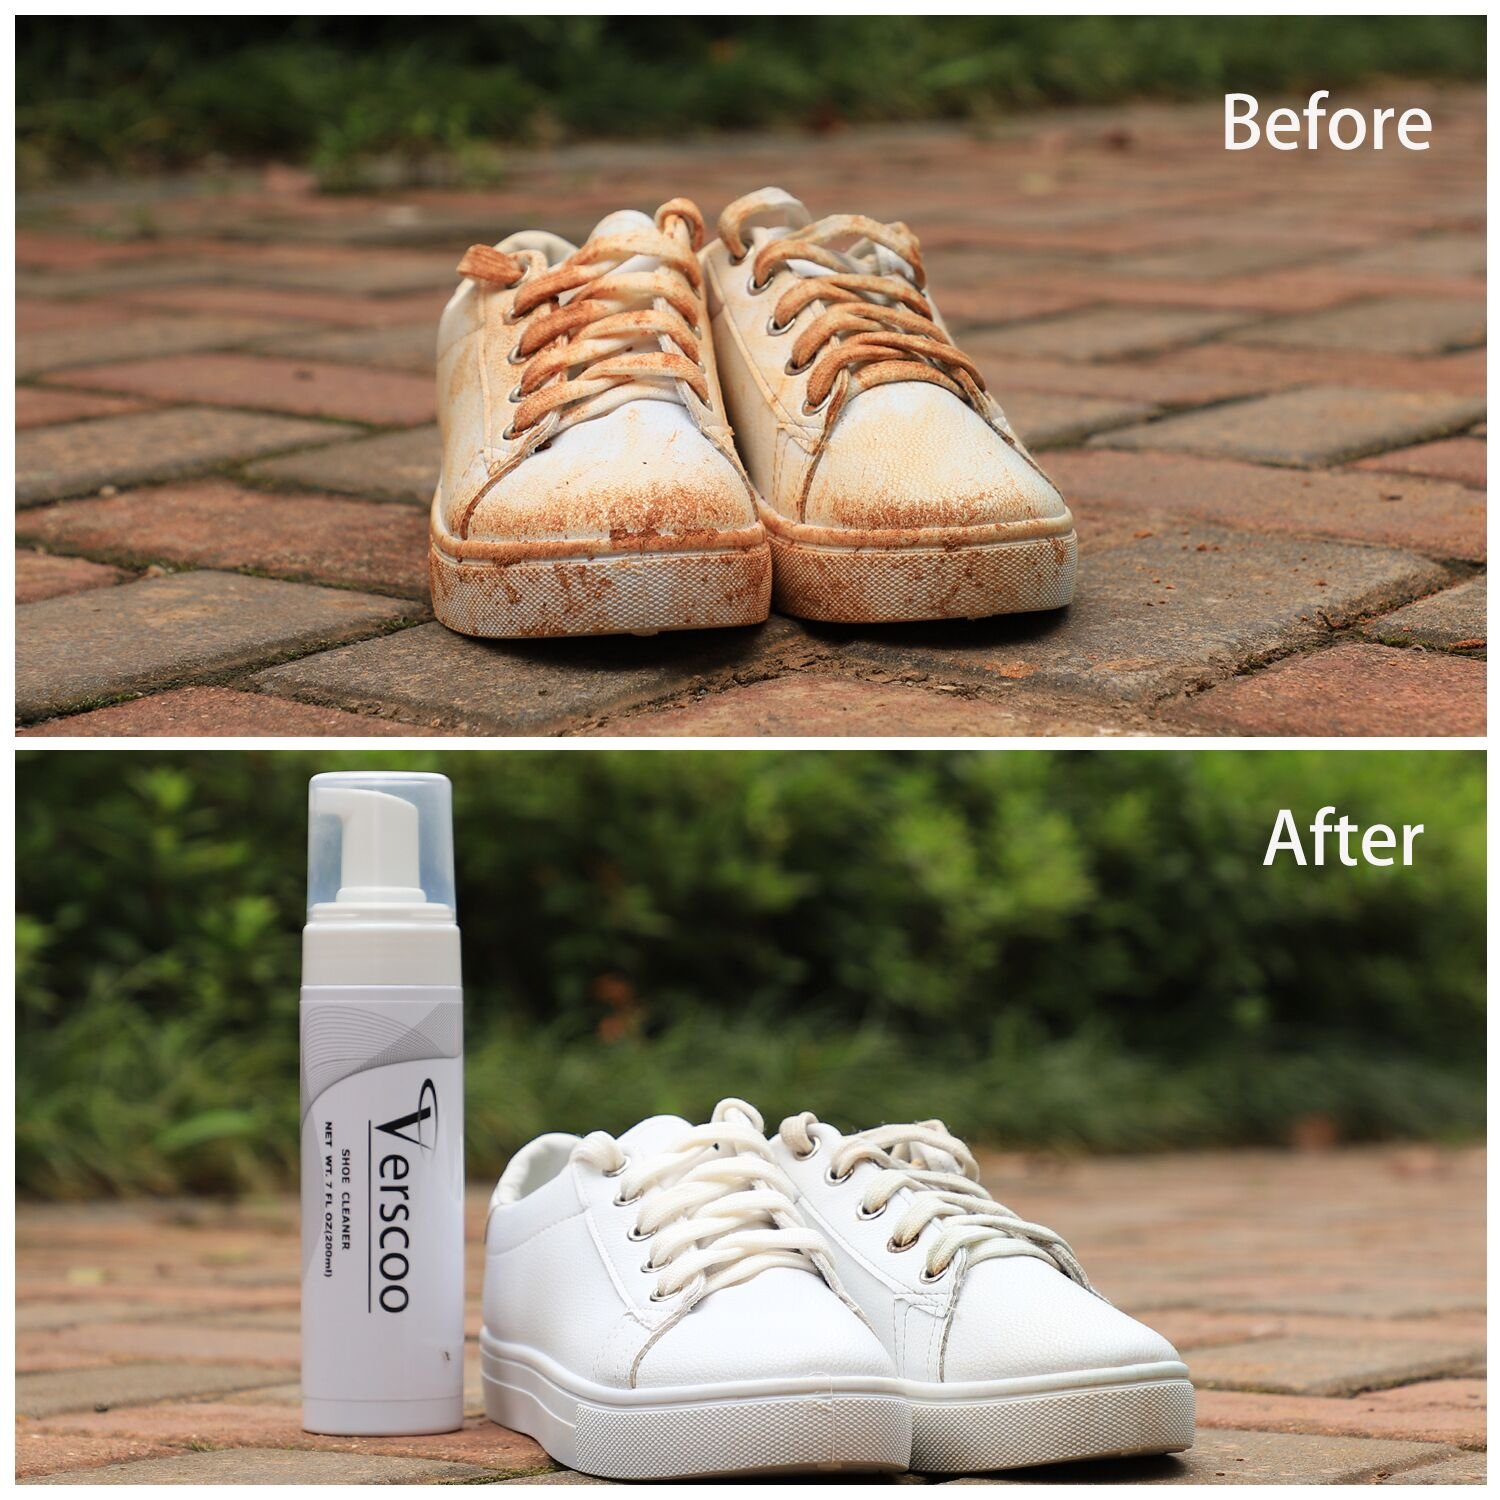 Shoe Cleaner Kit, Verscoo Fabric Cleaner Solution 7 Oz for Leather, Sneaker and Mesh Shoes by Verscoo (Image #5)